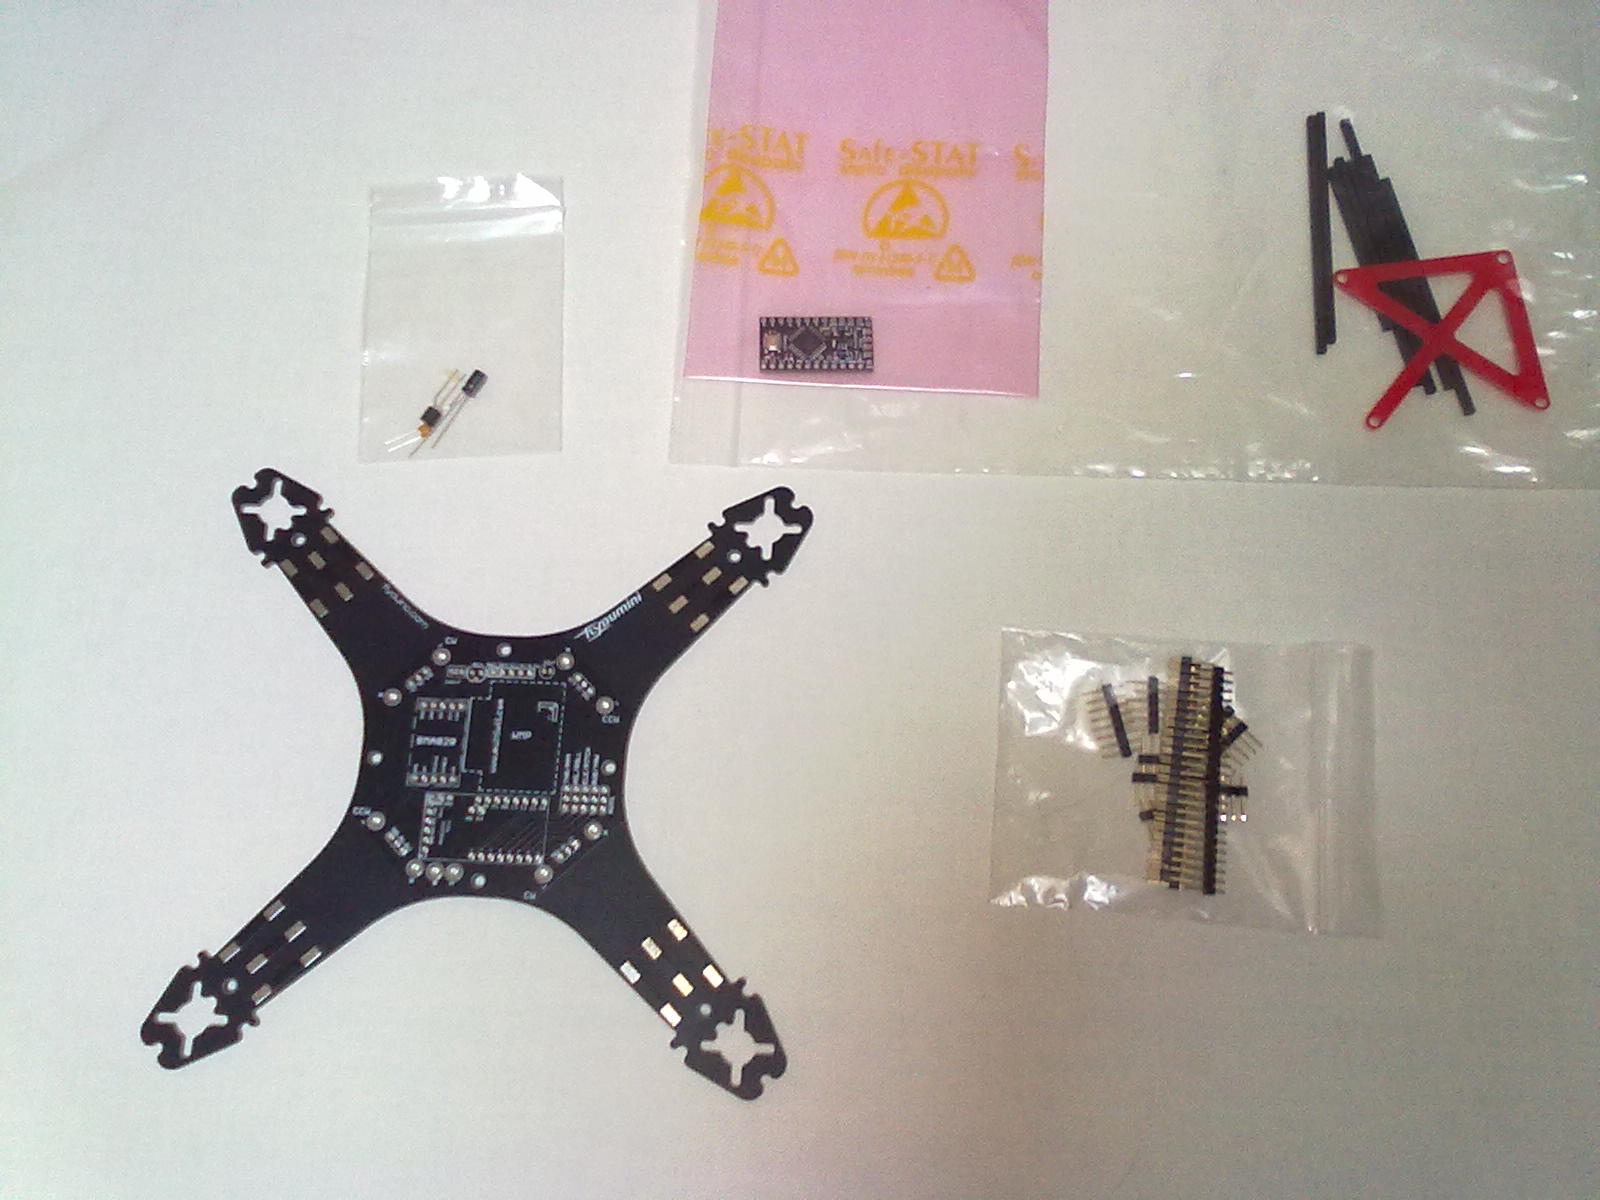 As it arrived from flyduino.com....